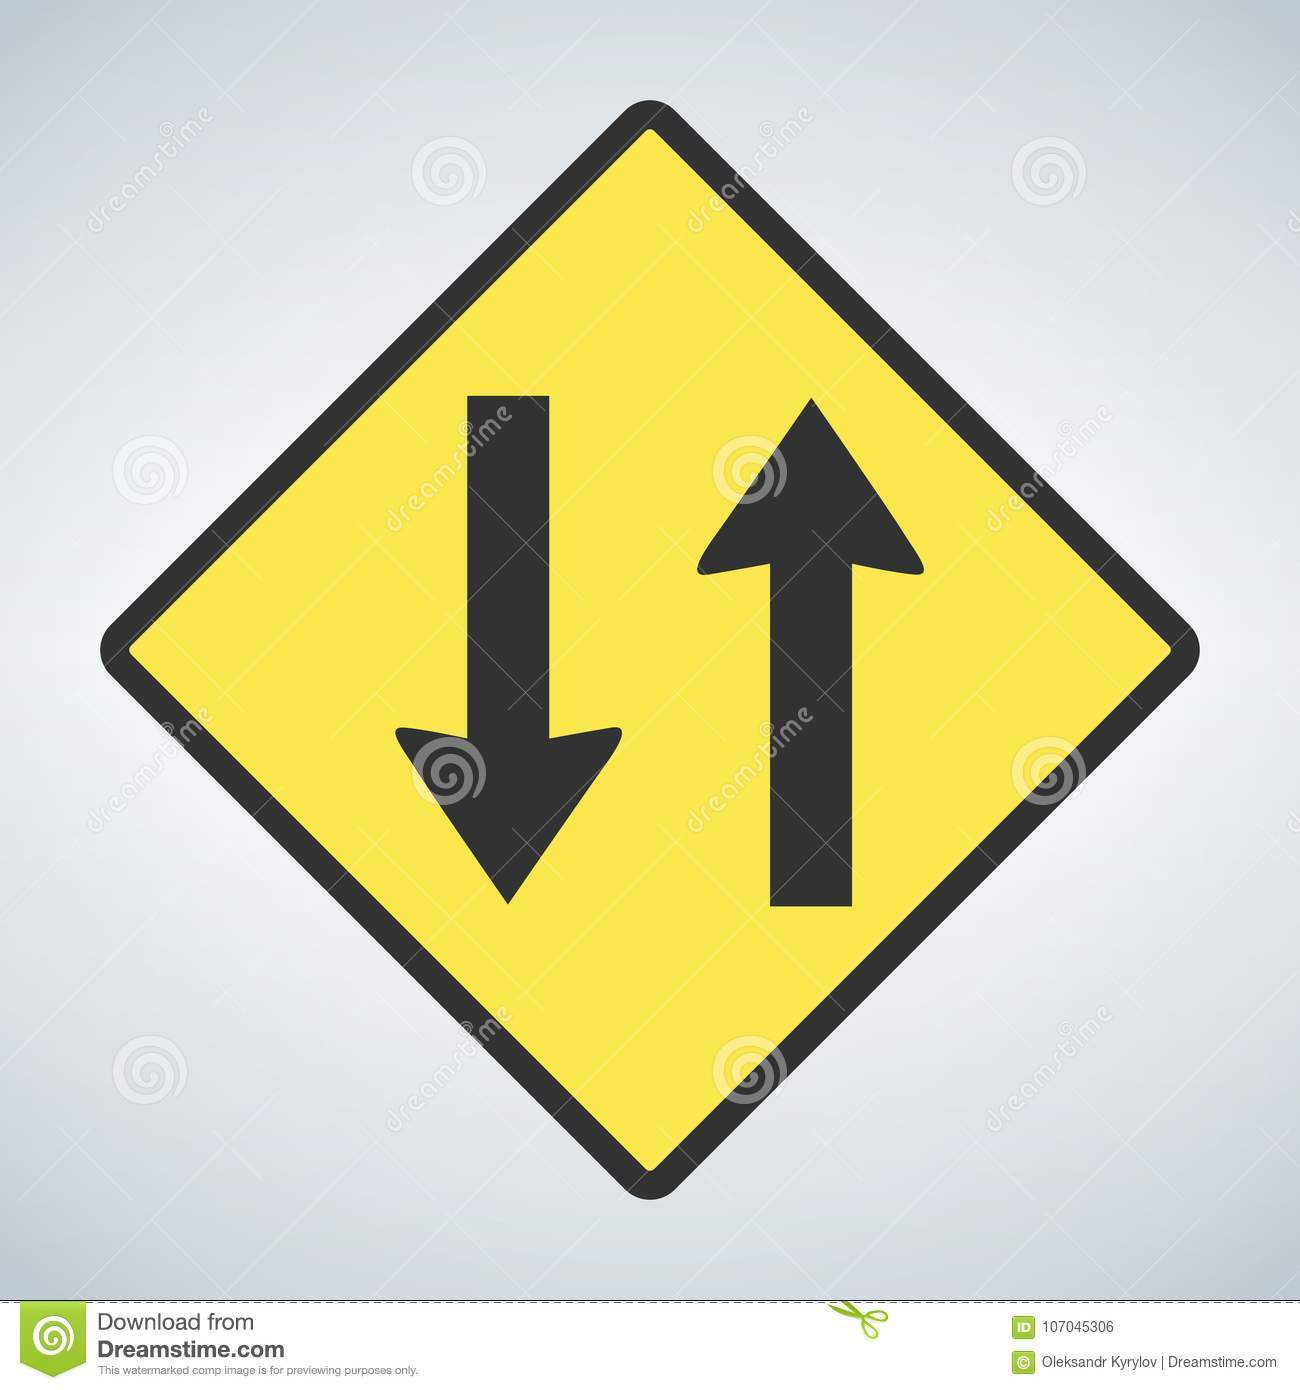 Best Two Way Traffic Sign Stock Photos, Pictures & Royalty ... |Two Way Traffic Ahead Sign